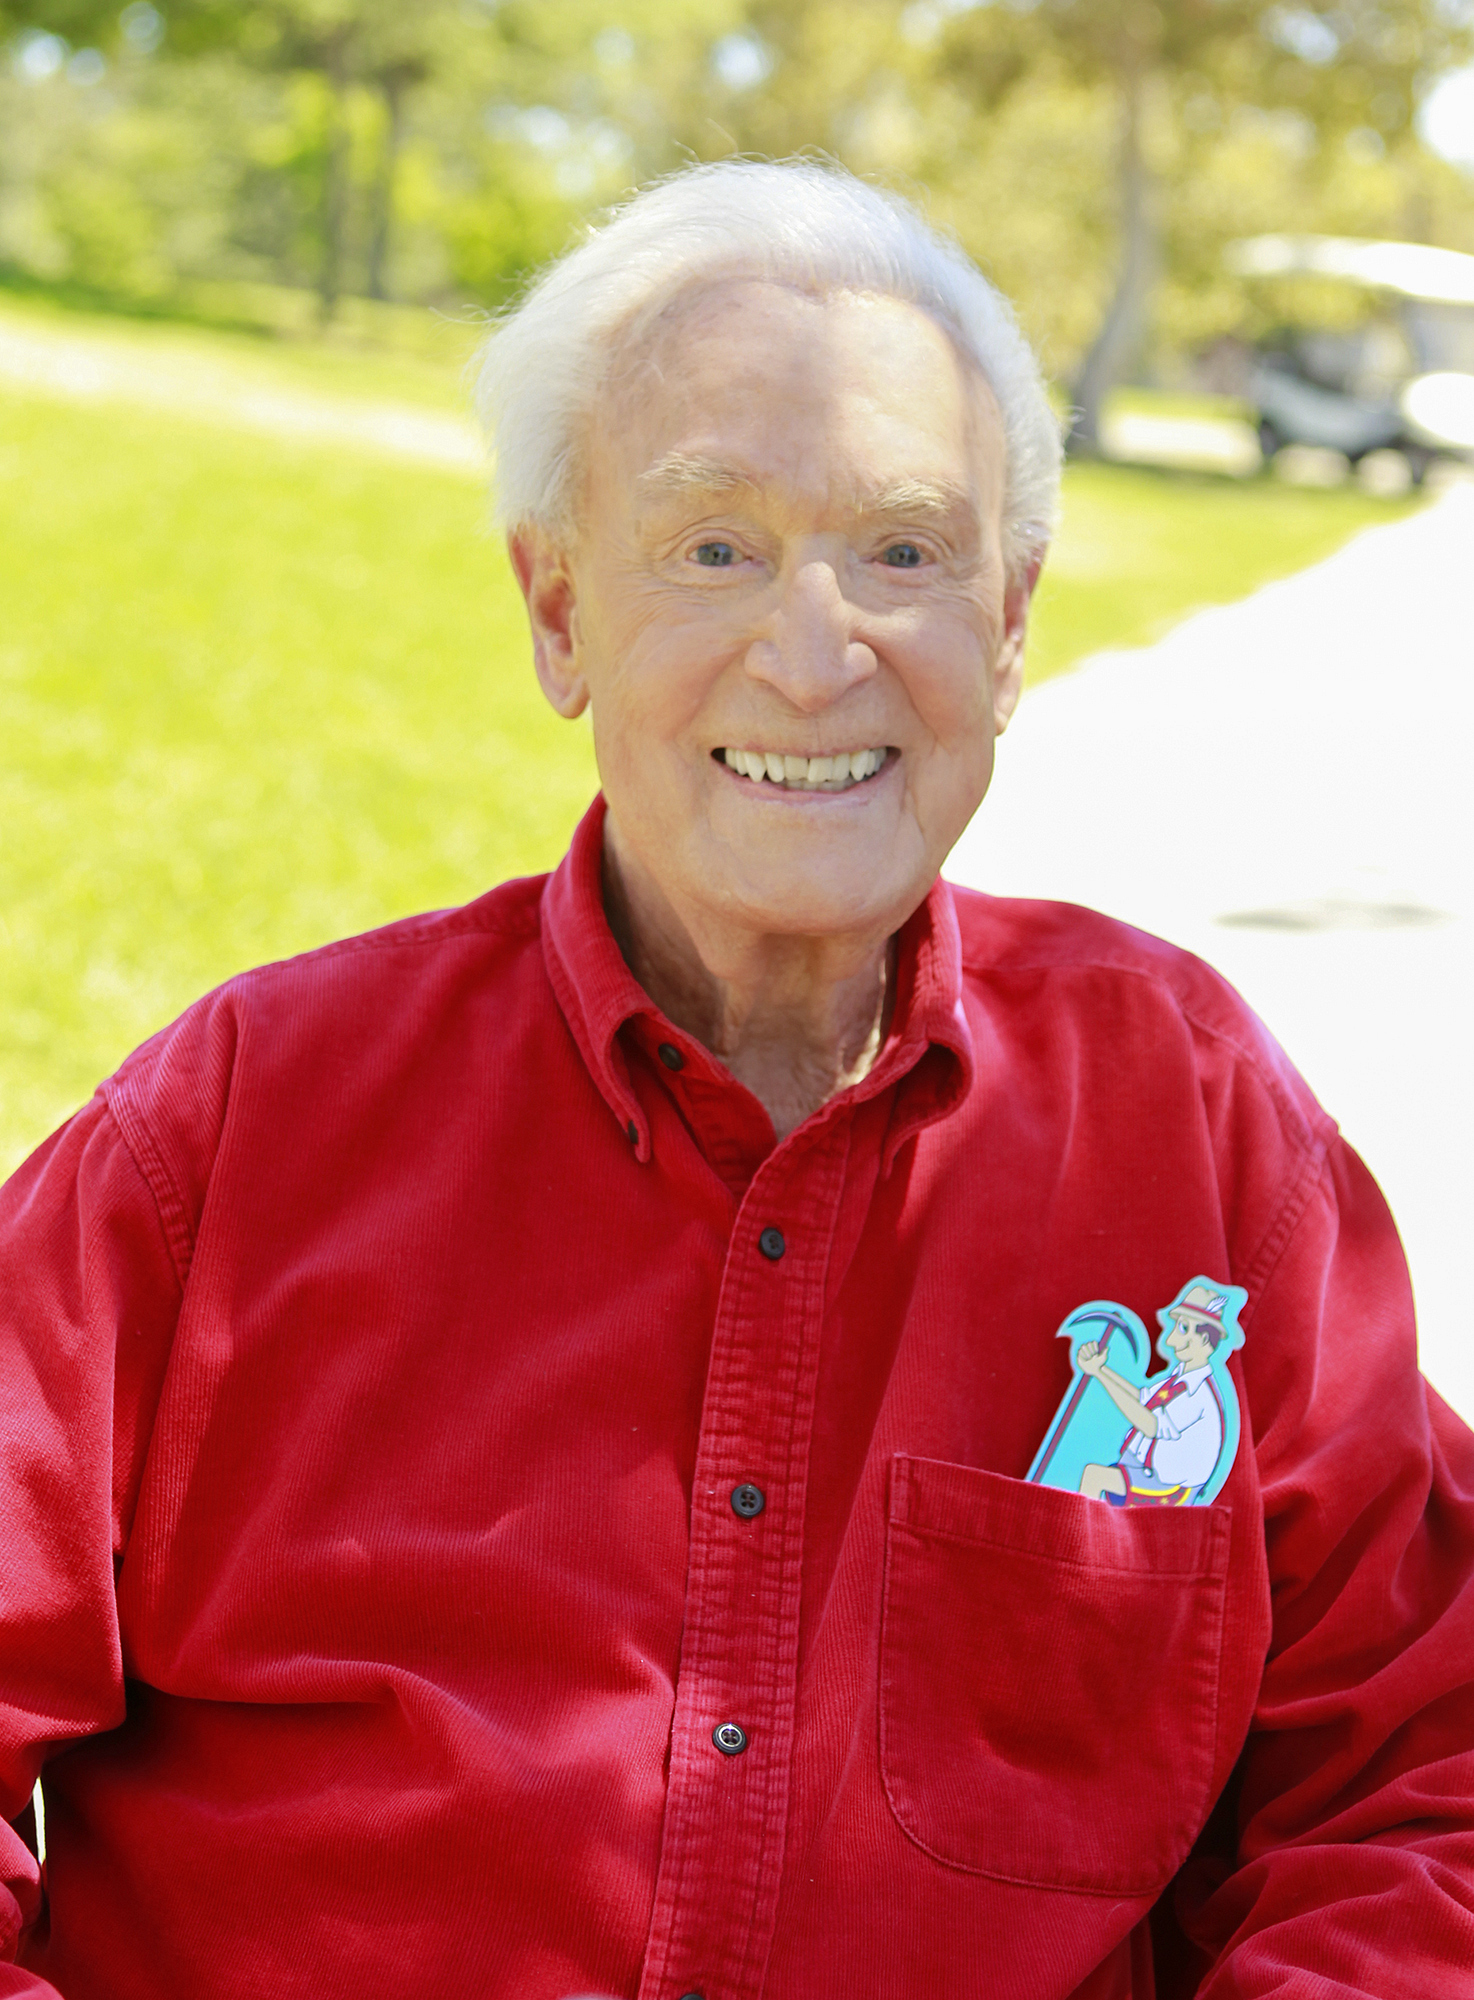 Hitching a ride with Bob Barker